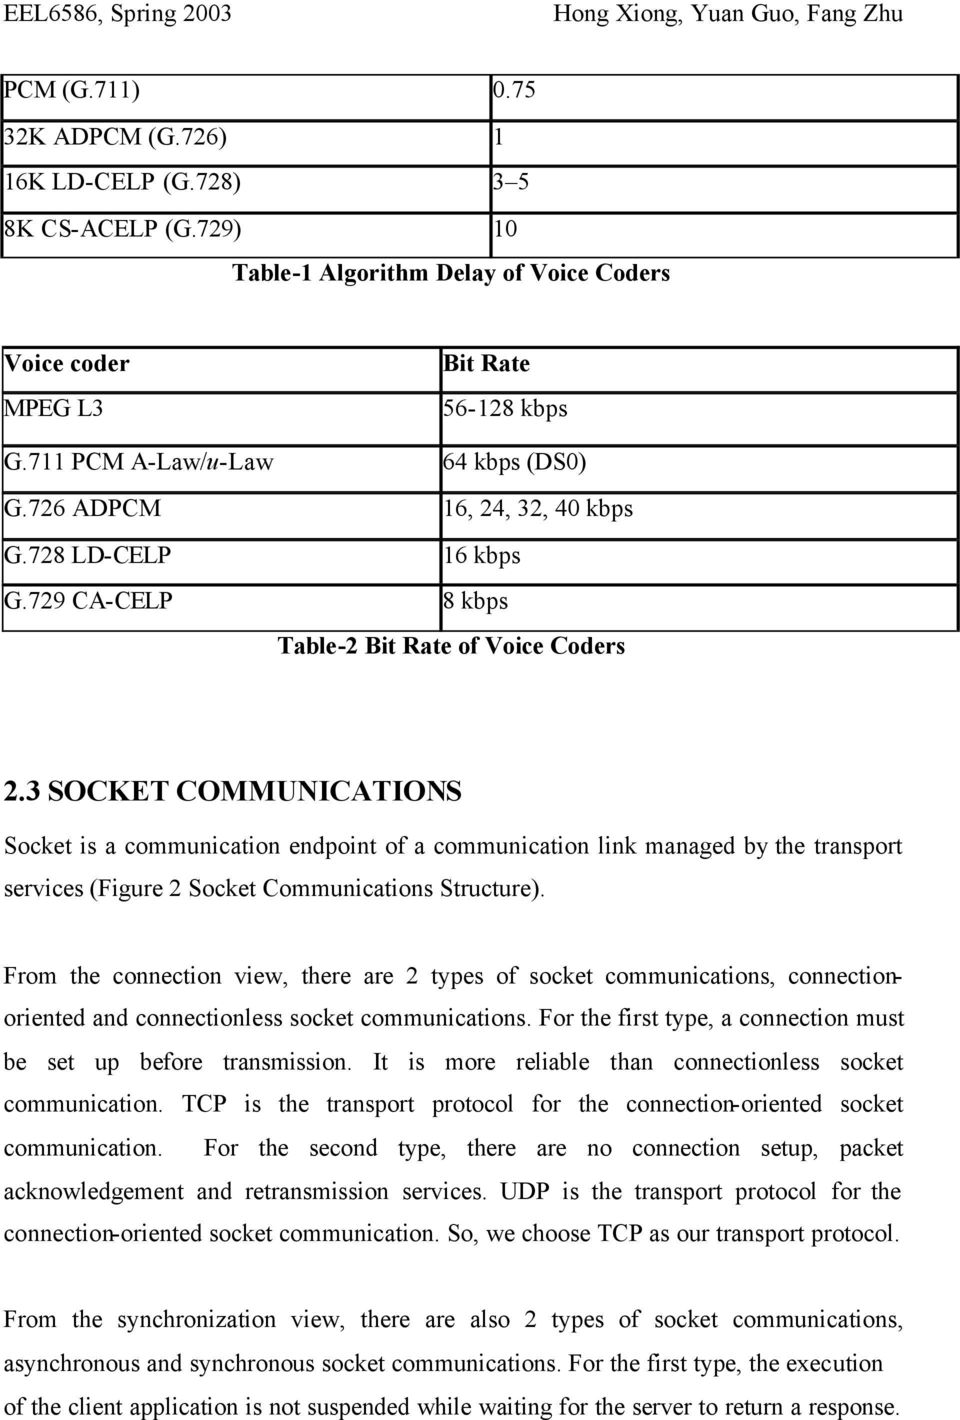 3 SOCKET COMMUNICATIONS Socket is a communication endpoint of a communication link managed by the transport services (Figure 2 Socket Communications Structure).